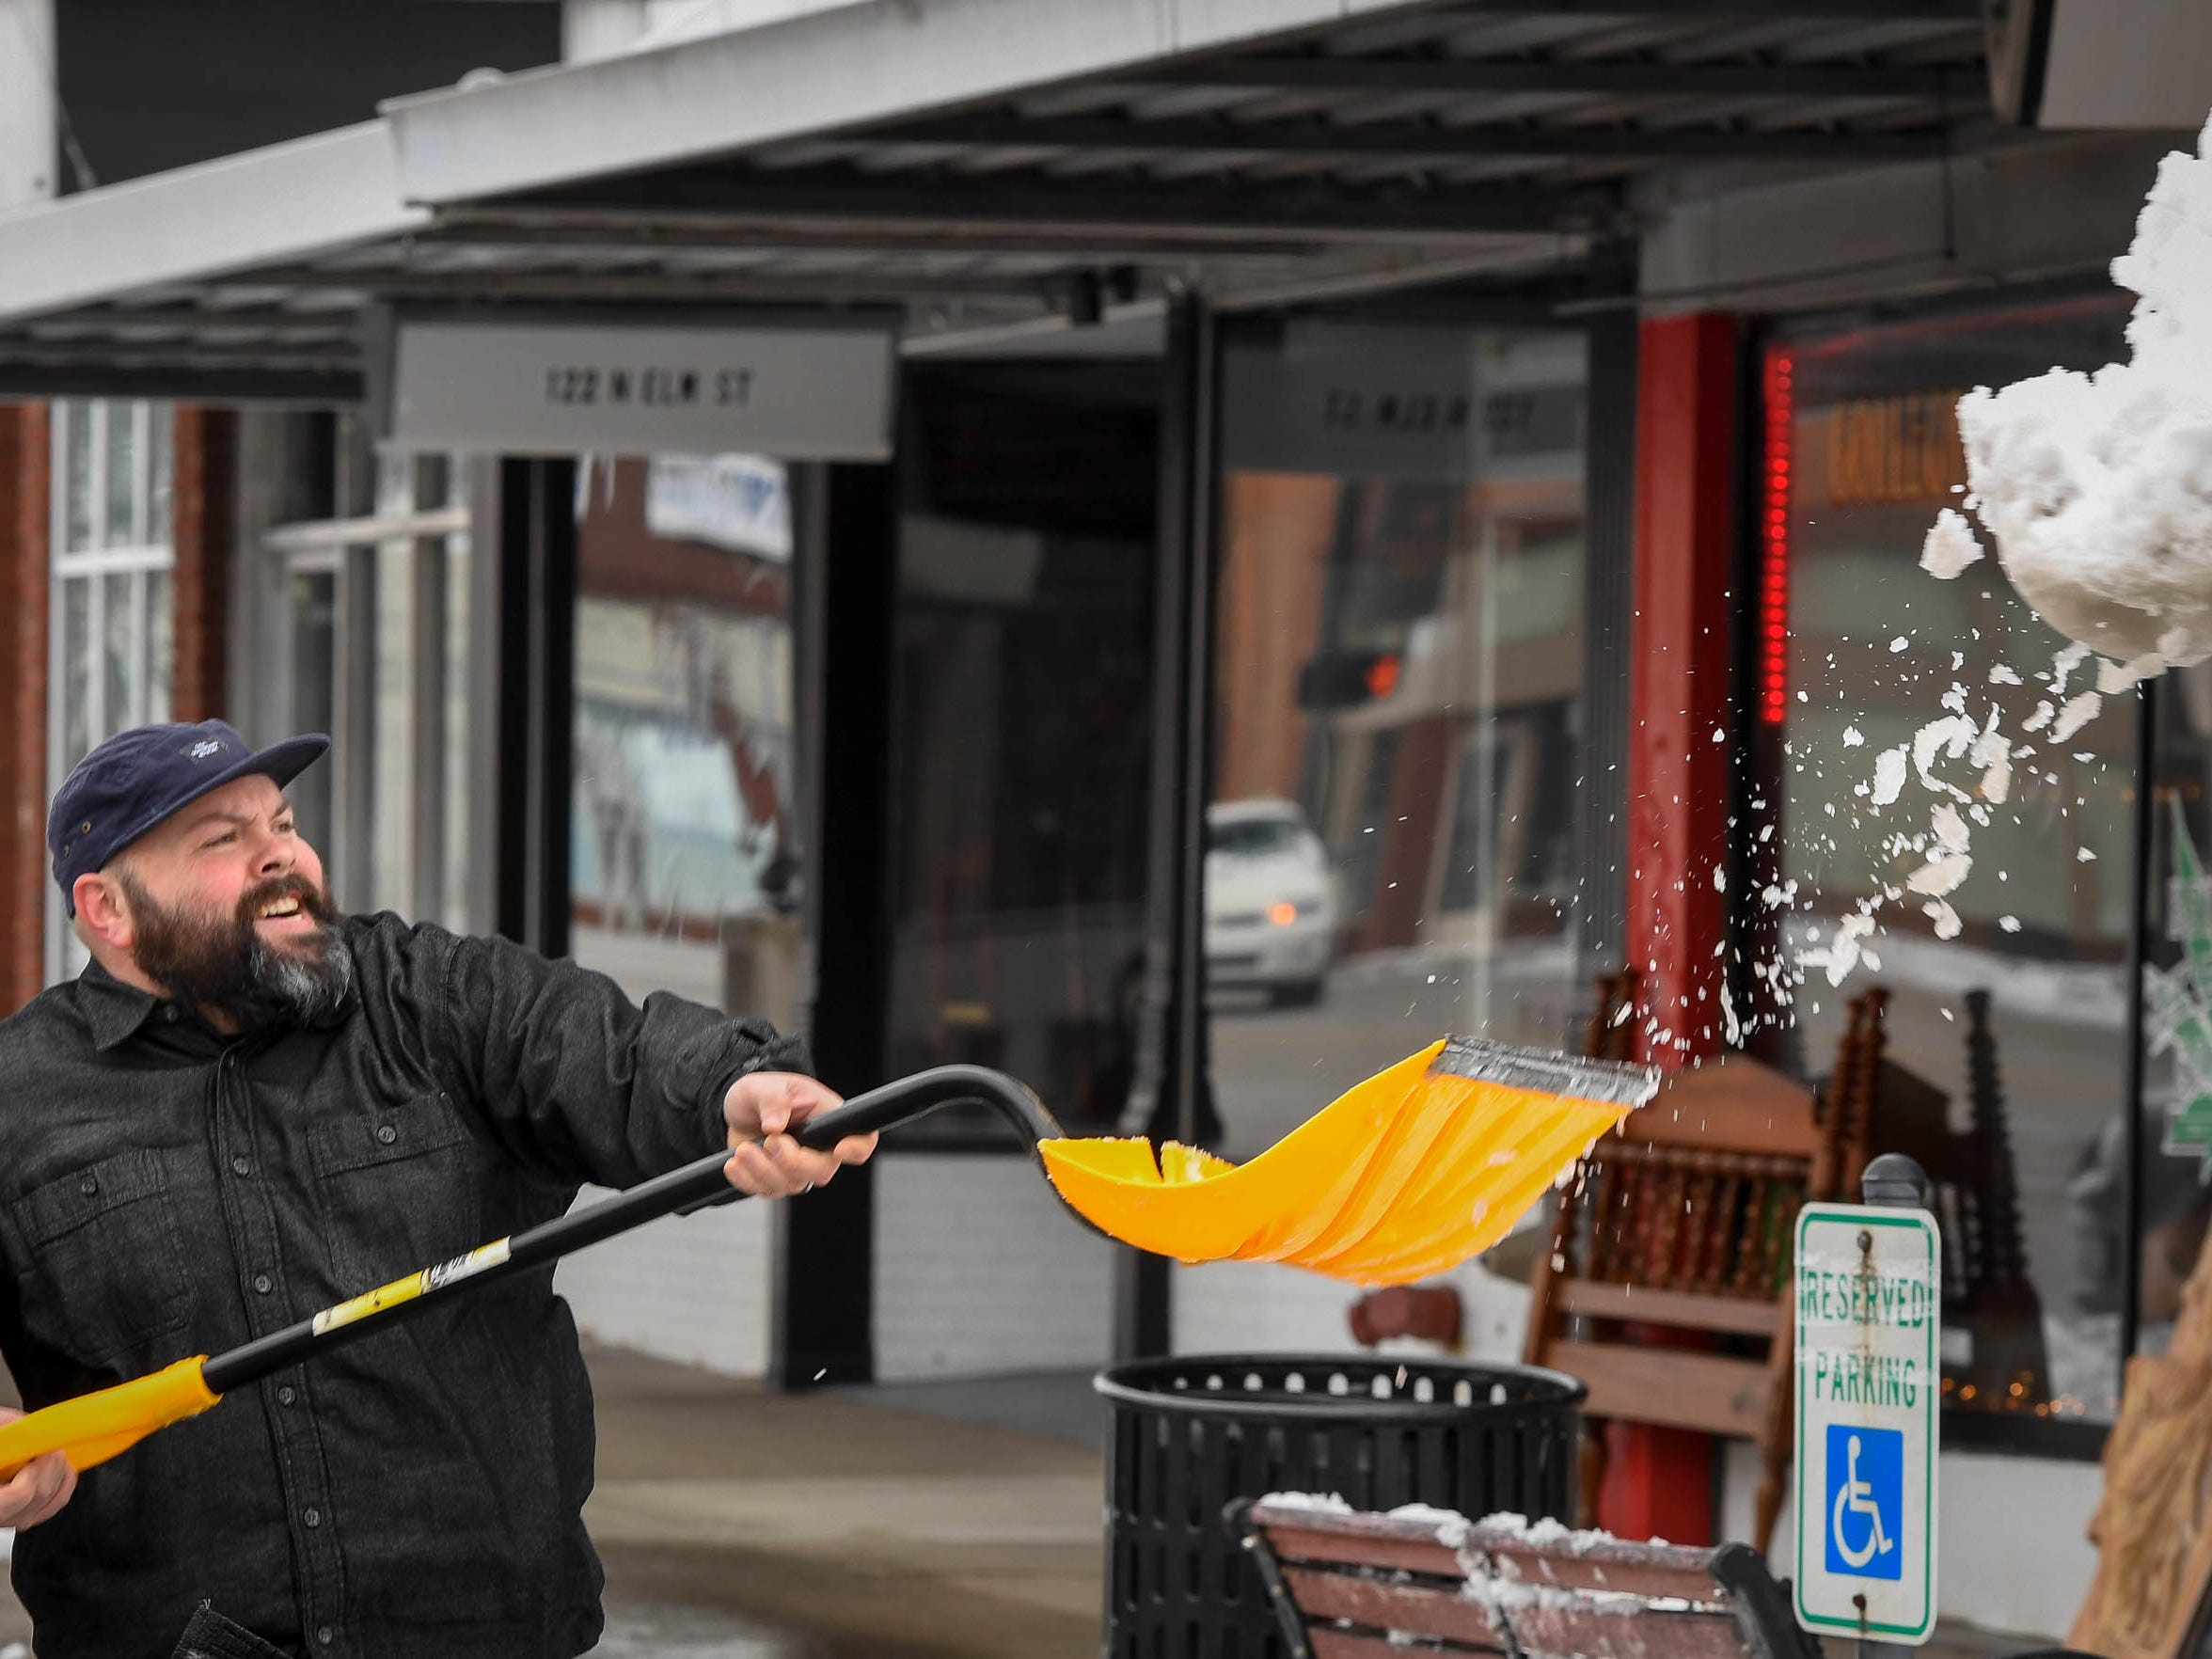 Matt Glick, Henderson, busy with the morning chore, shoveling snow in front of his dad's antique store on Elm Street in downtown Henderson Saturday, January 12 2019.